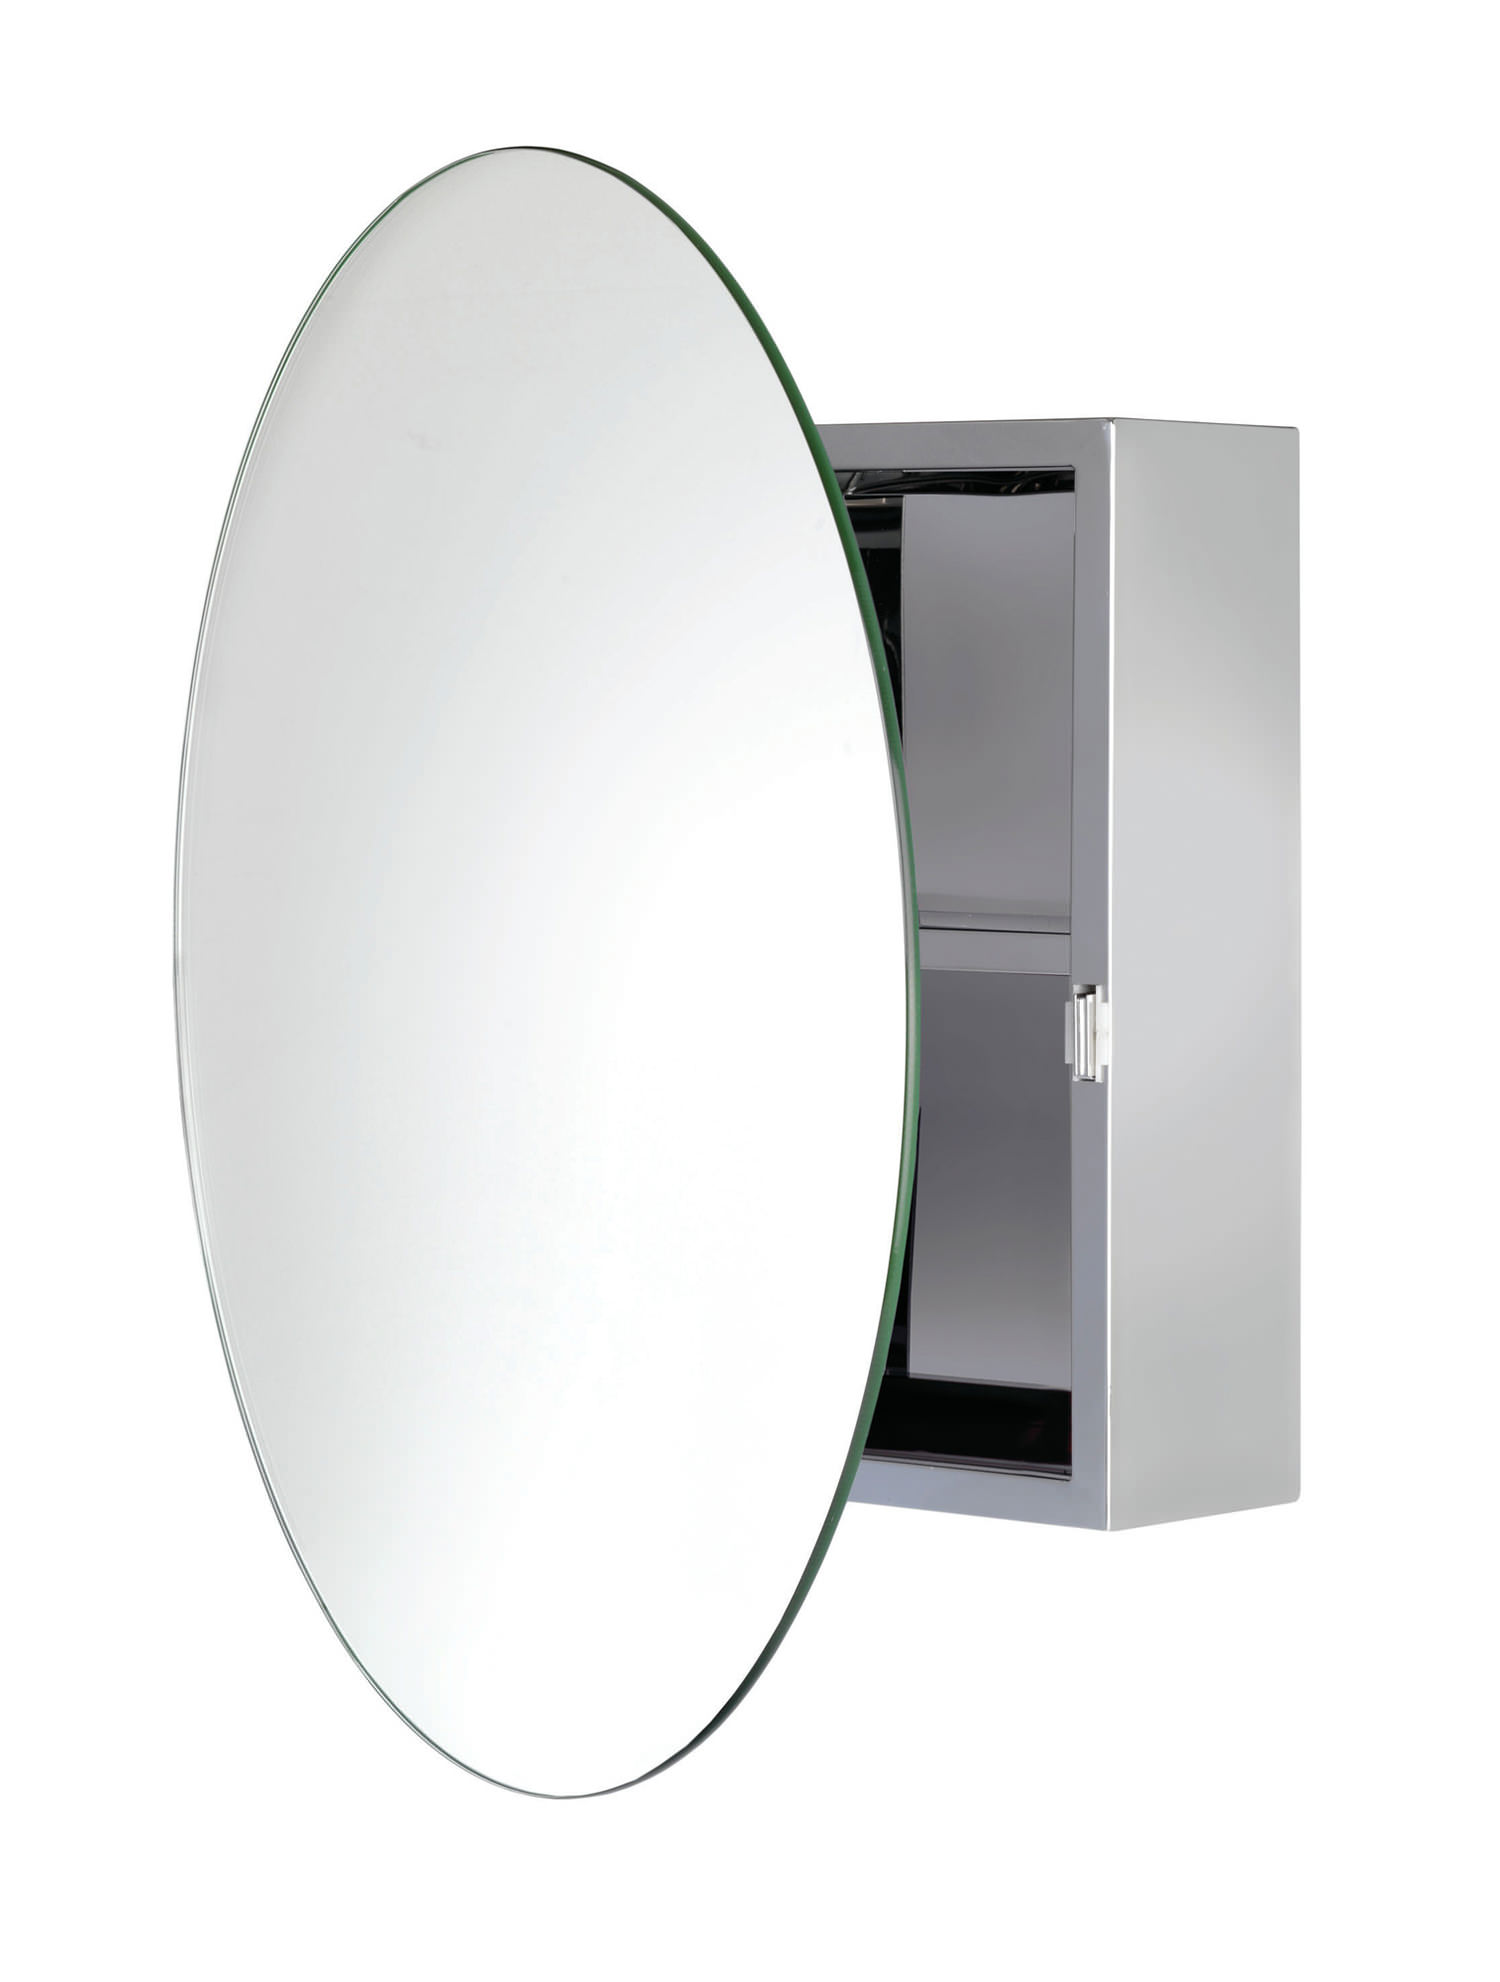 Mirrored Bathroom Cabinets Uk Mirror For Bathroom Uk Gedy 3 Door Mirror Bathroom Cabinet White